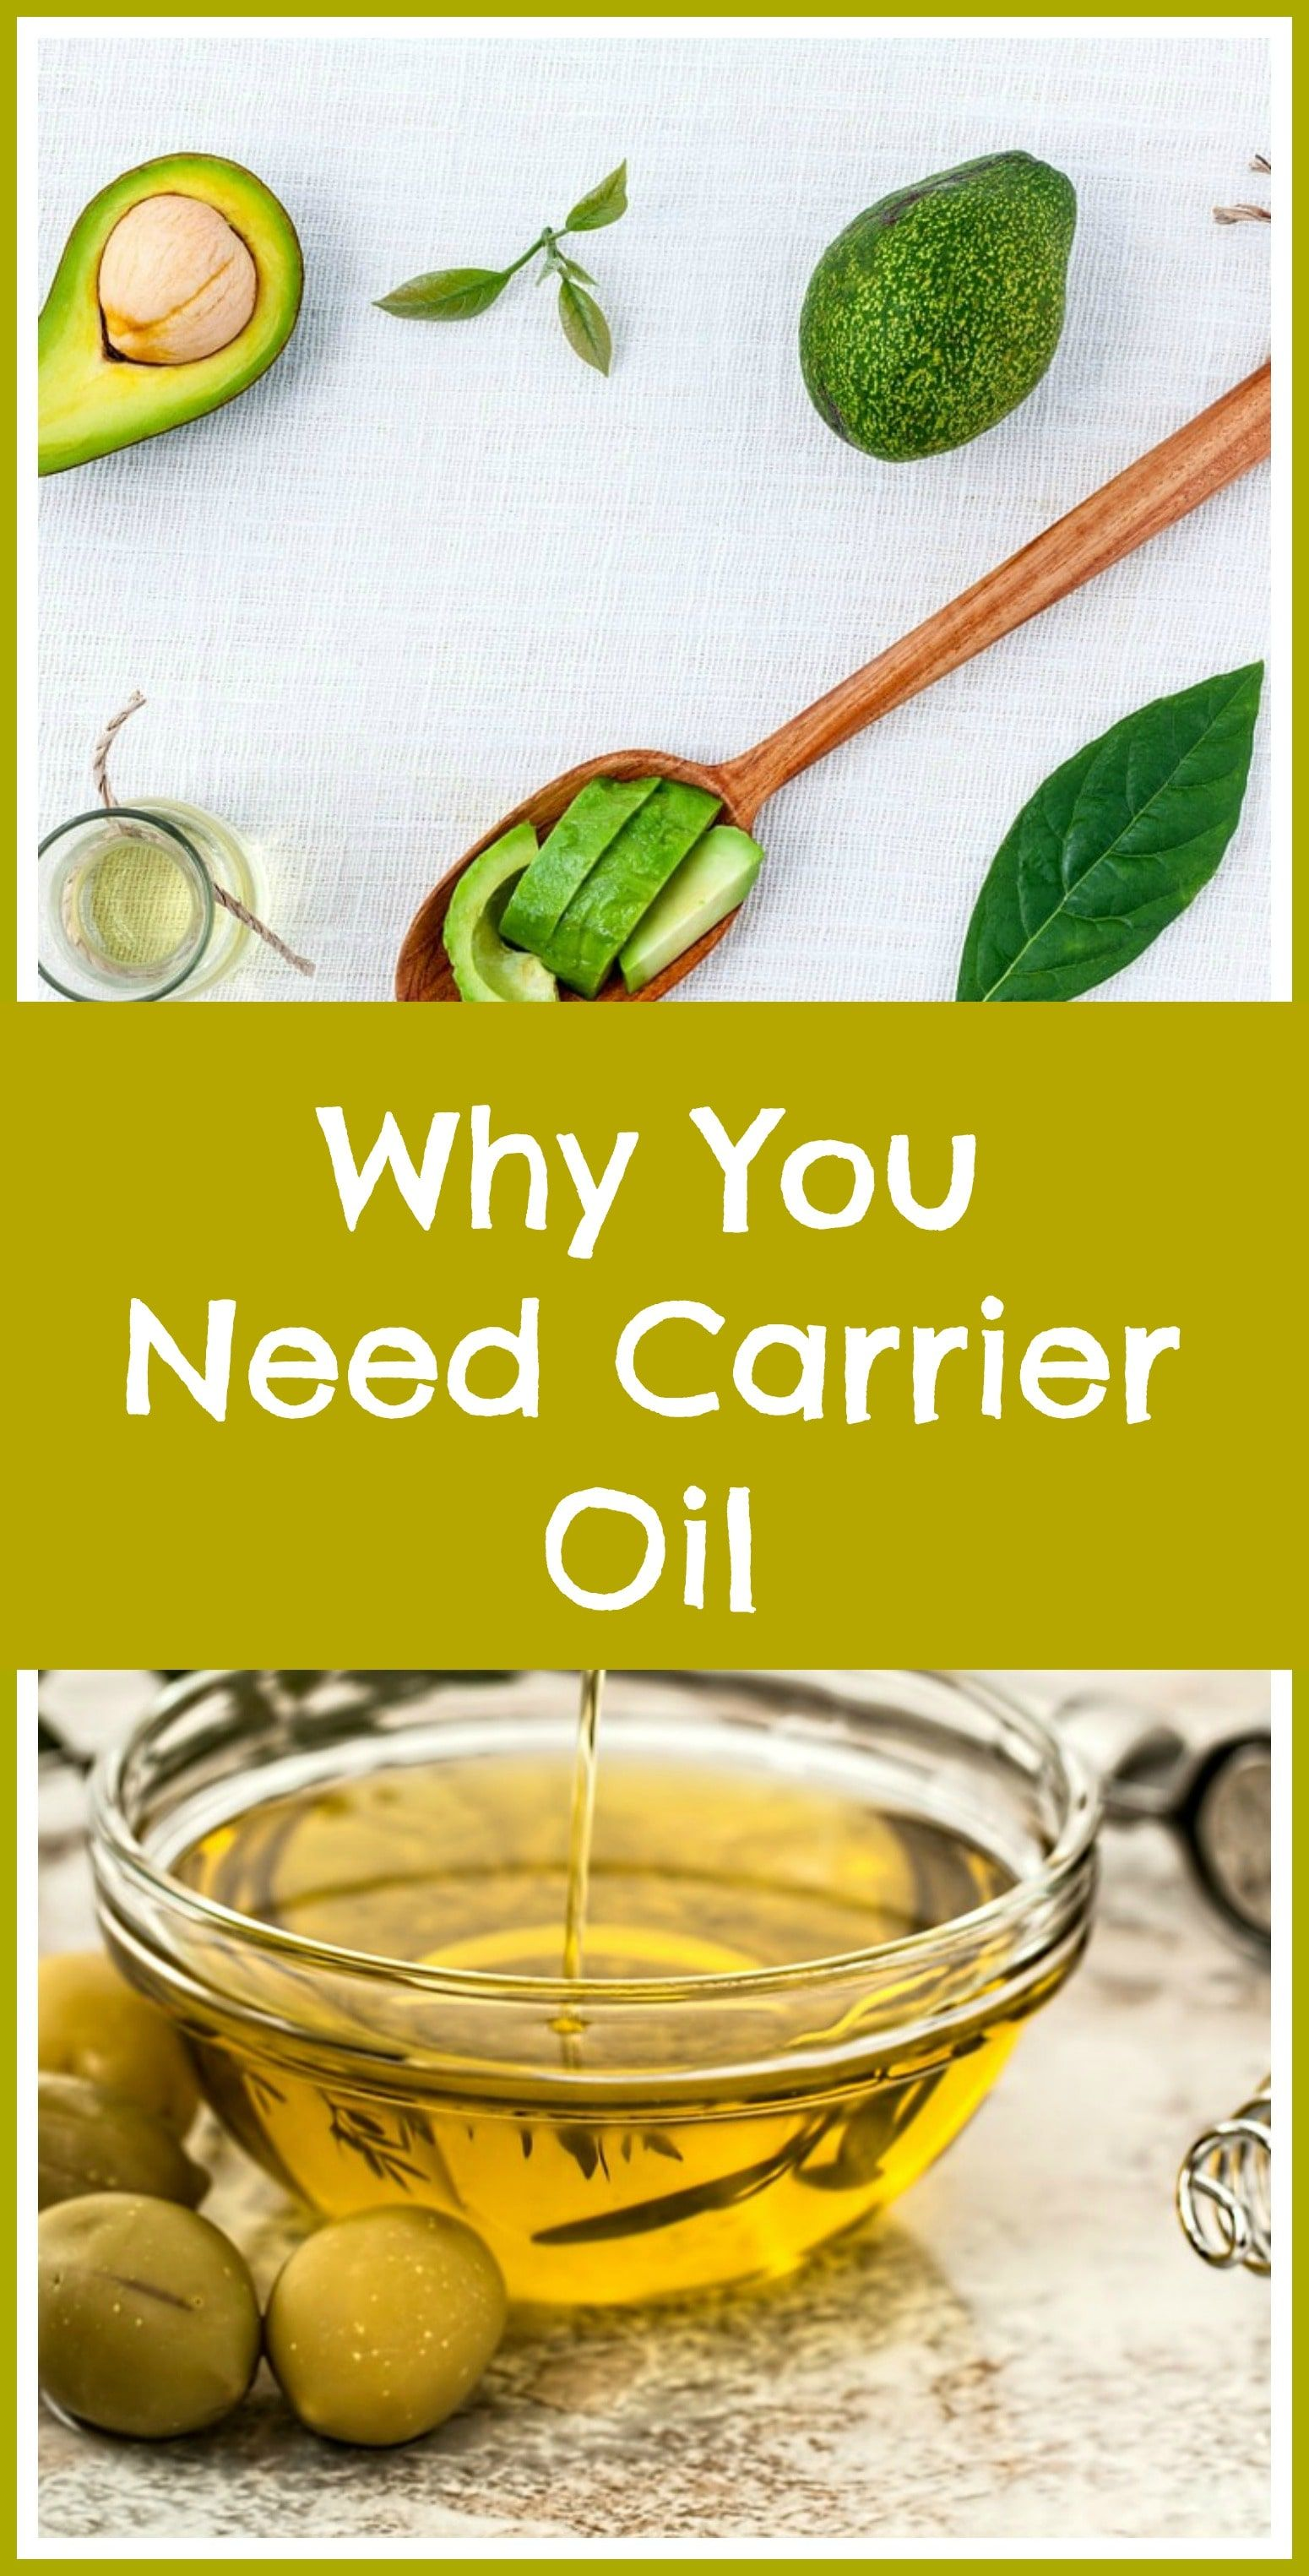 Why use carrier oil with essential oils. Carrier oils do more than protect your skin from highly concentrated aromatic oils. Why they are needed, if you want to reap the full benefits of aromatherapy.